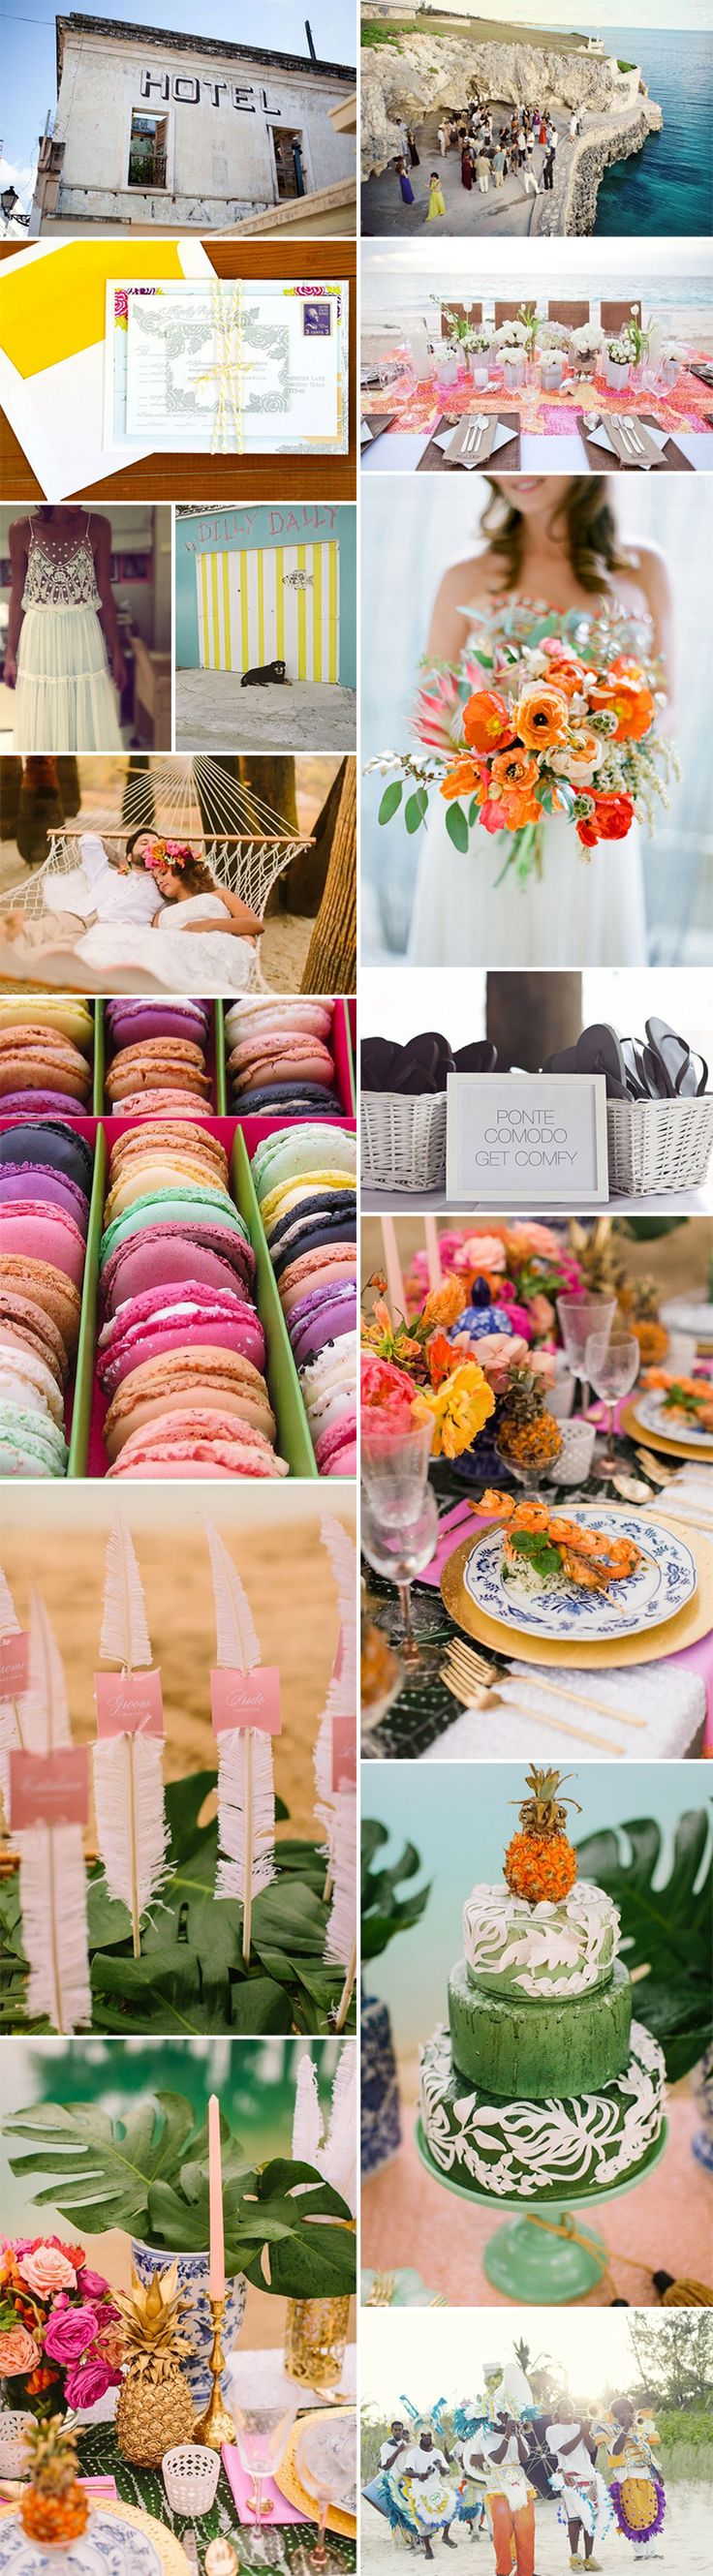 29 Best Wedding Color Inspiration Images On Pinterest